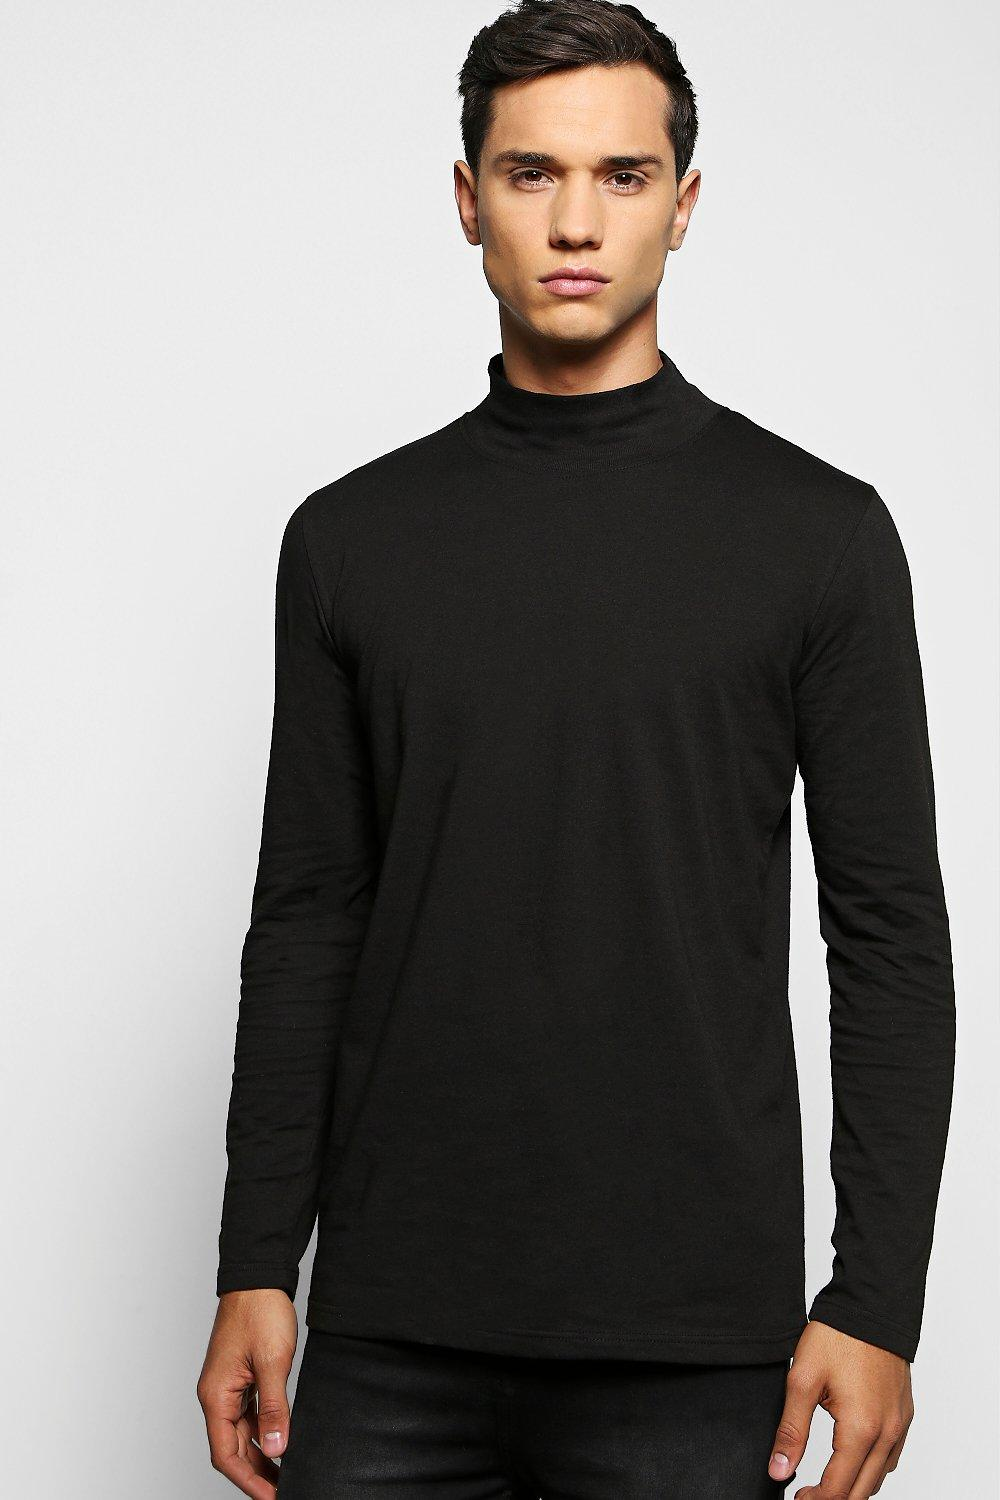 290c2cc736d9d9 Mens Black Long Sleeve High Neck T Shirt. Hover to zoom